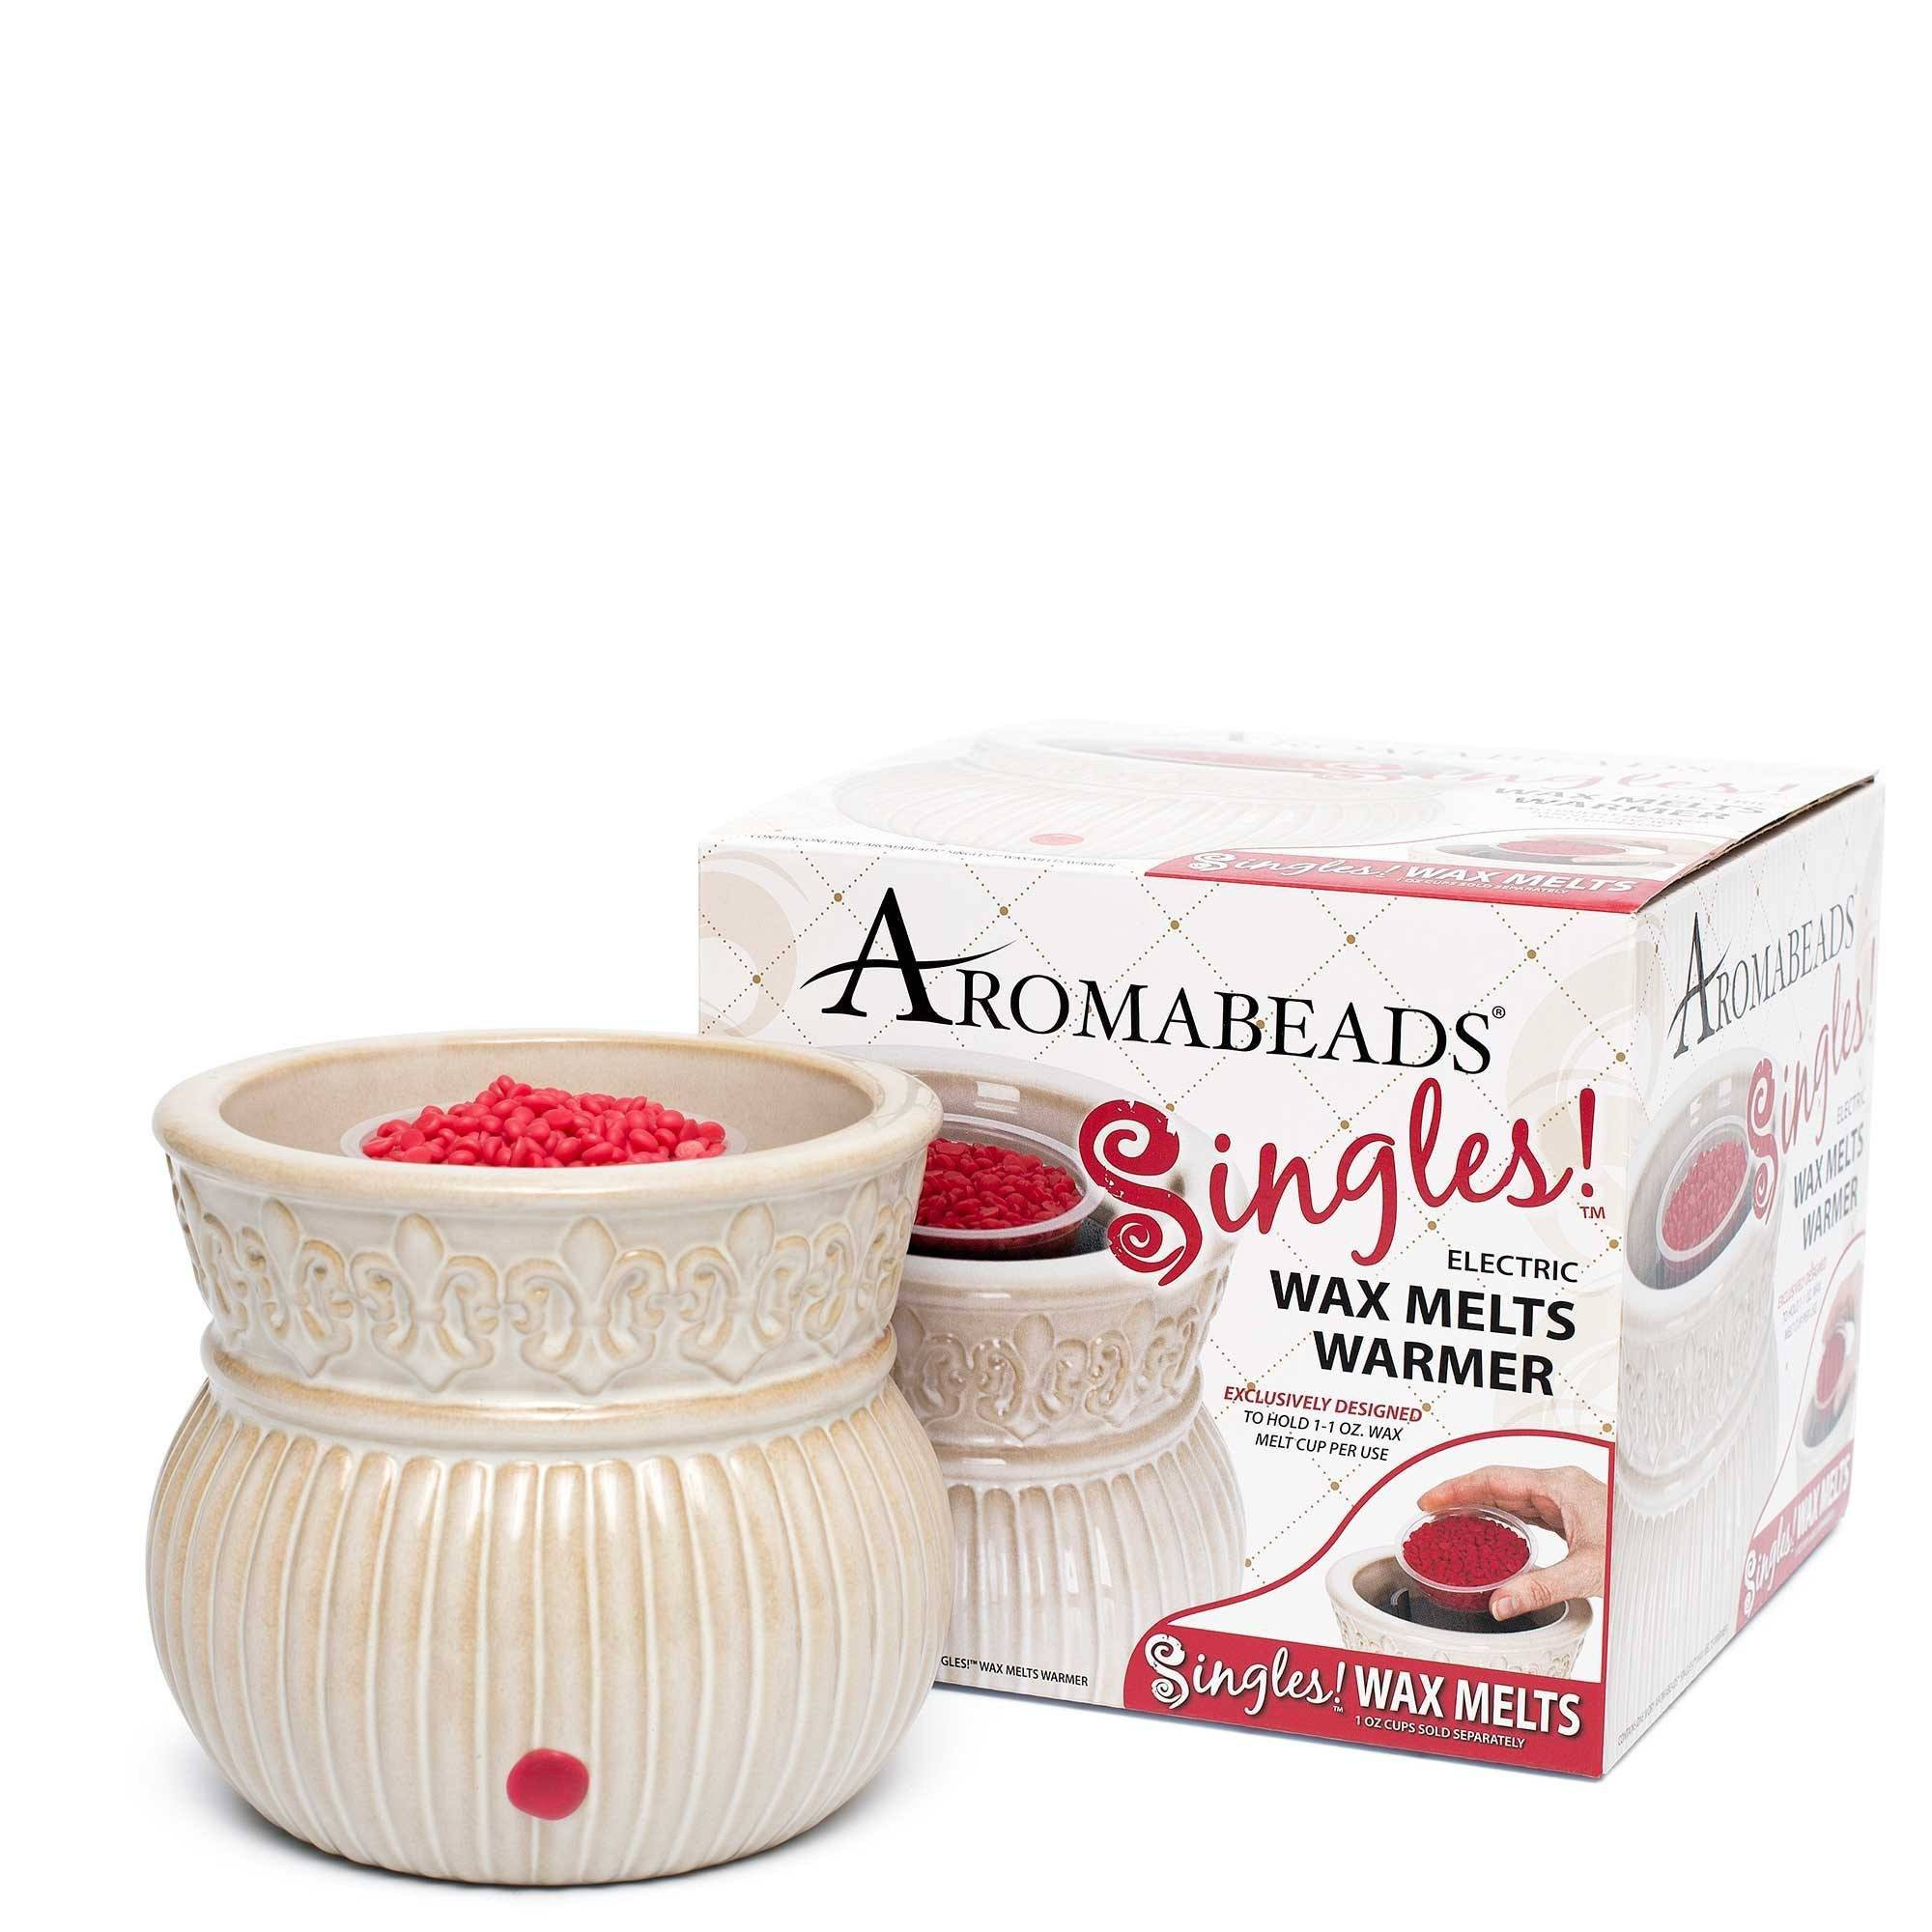 Aromabeads Singles Juicy Apple Pomegranate Wax Melts 10 Pack - Candlemart.com